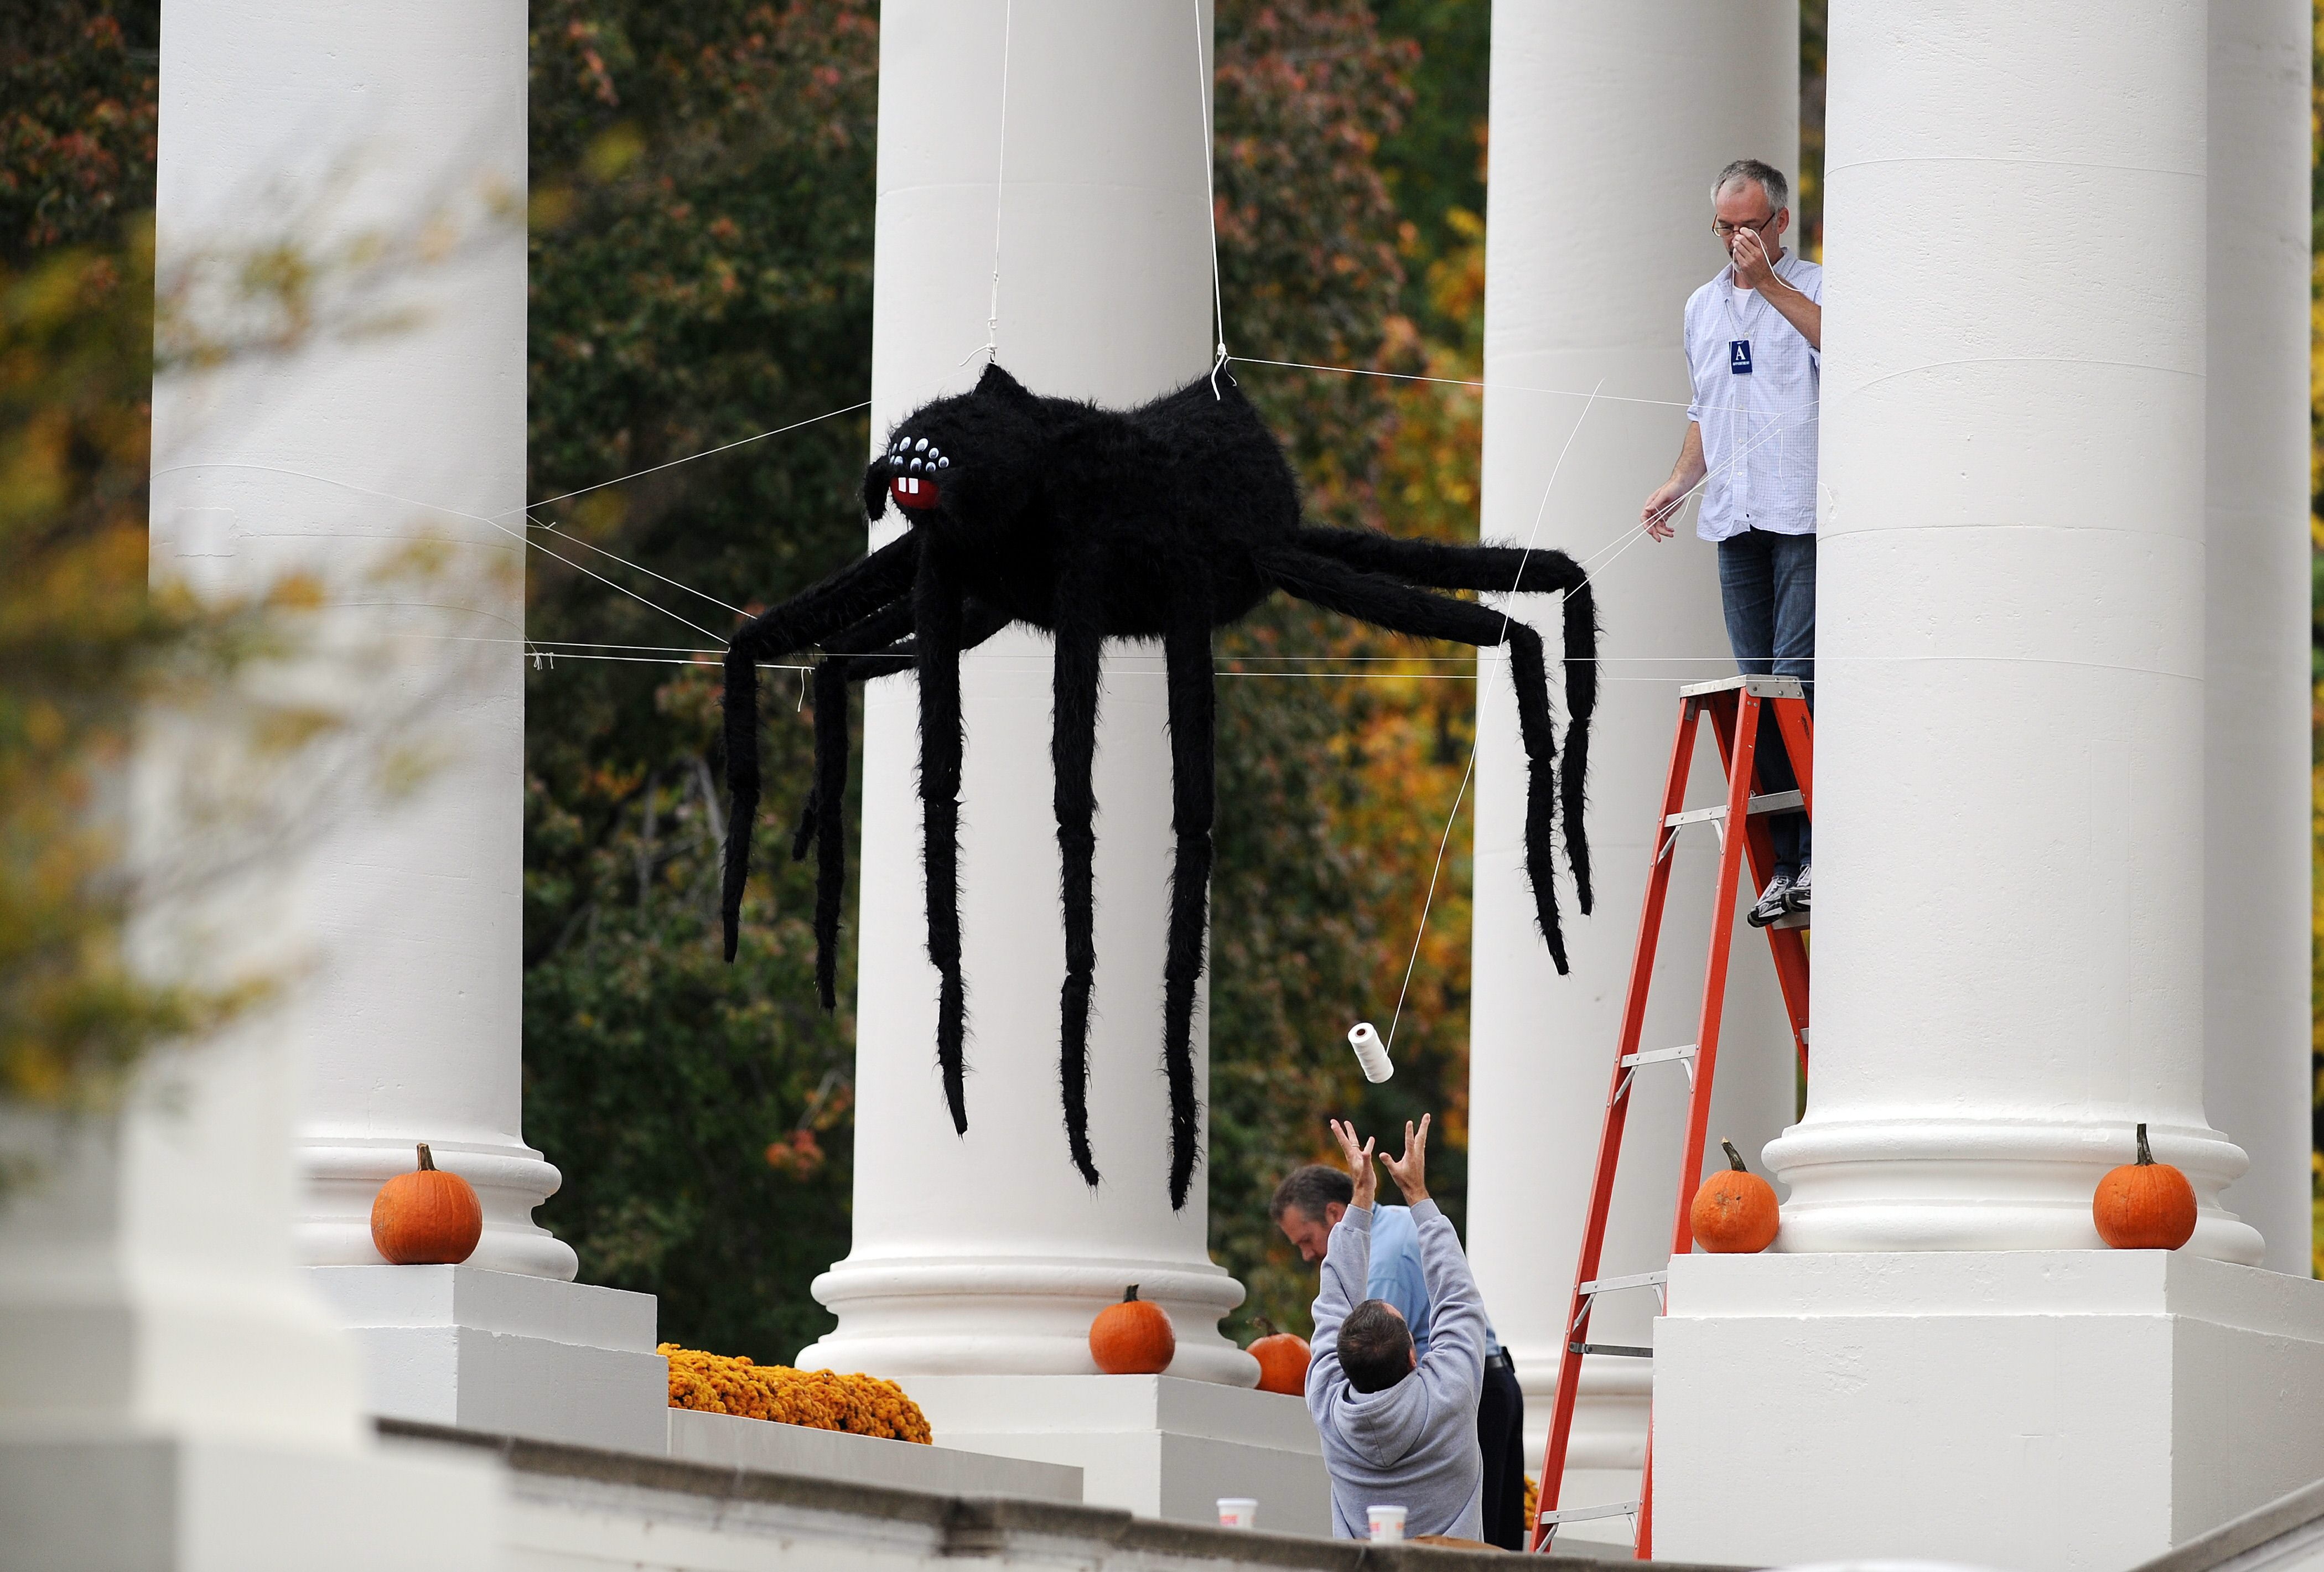 Workers install Halloween decorations at the North Portico of the Whi